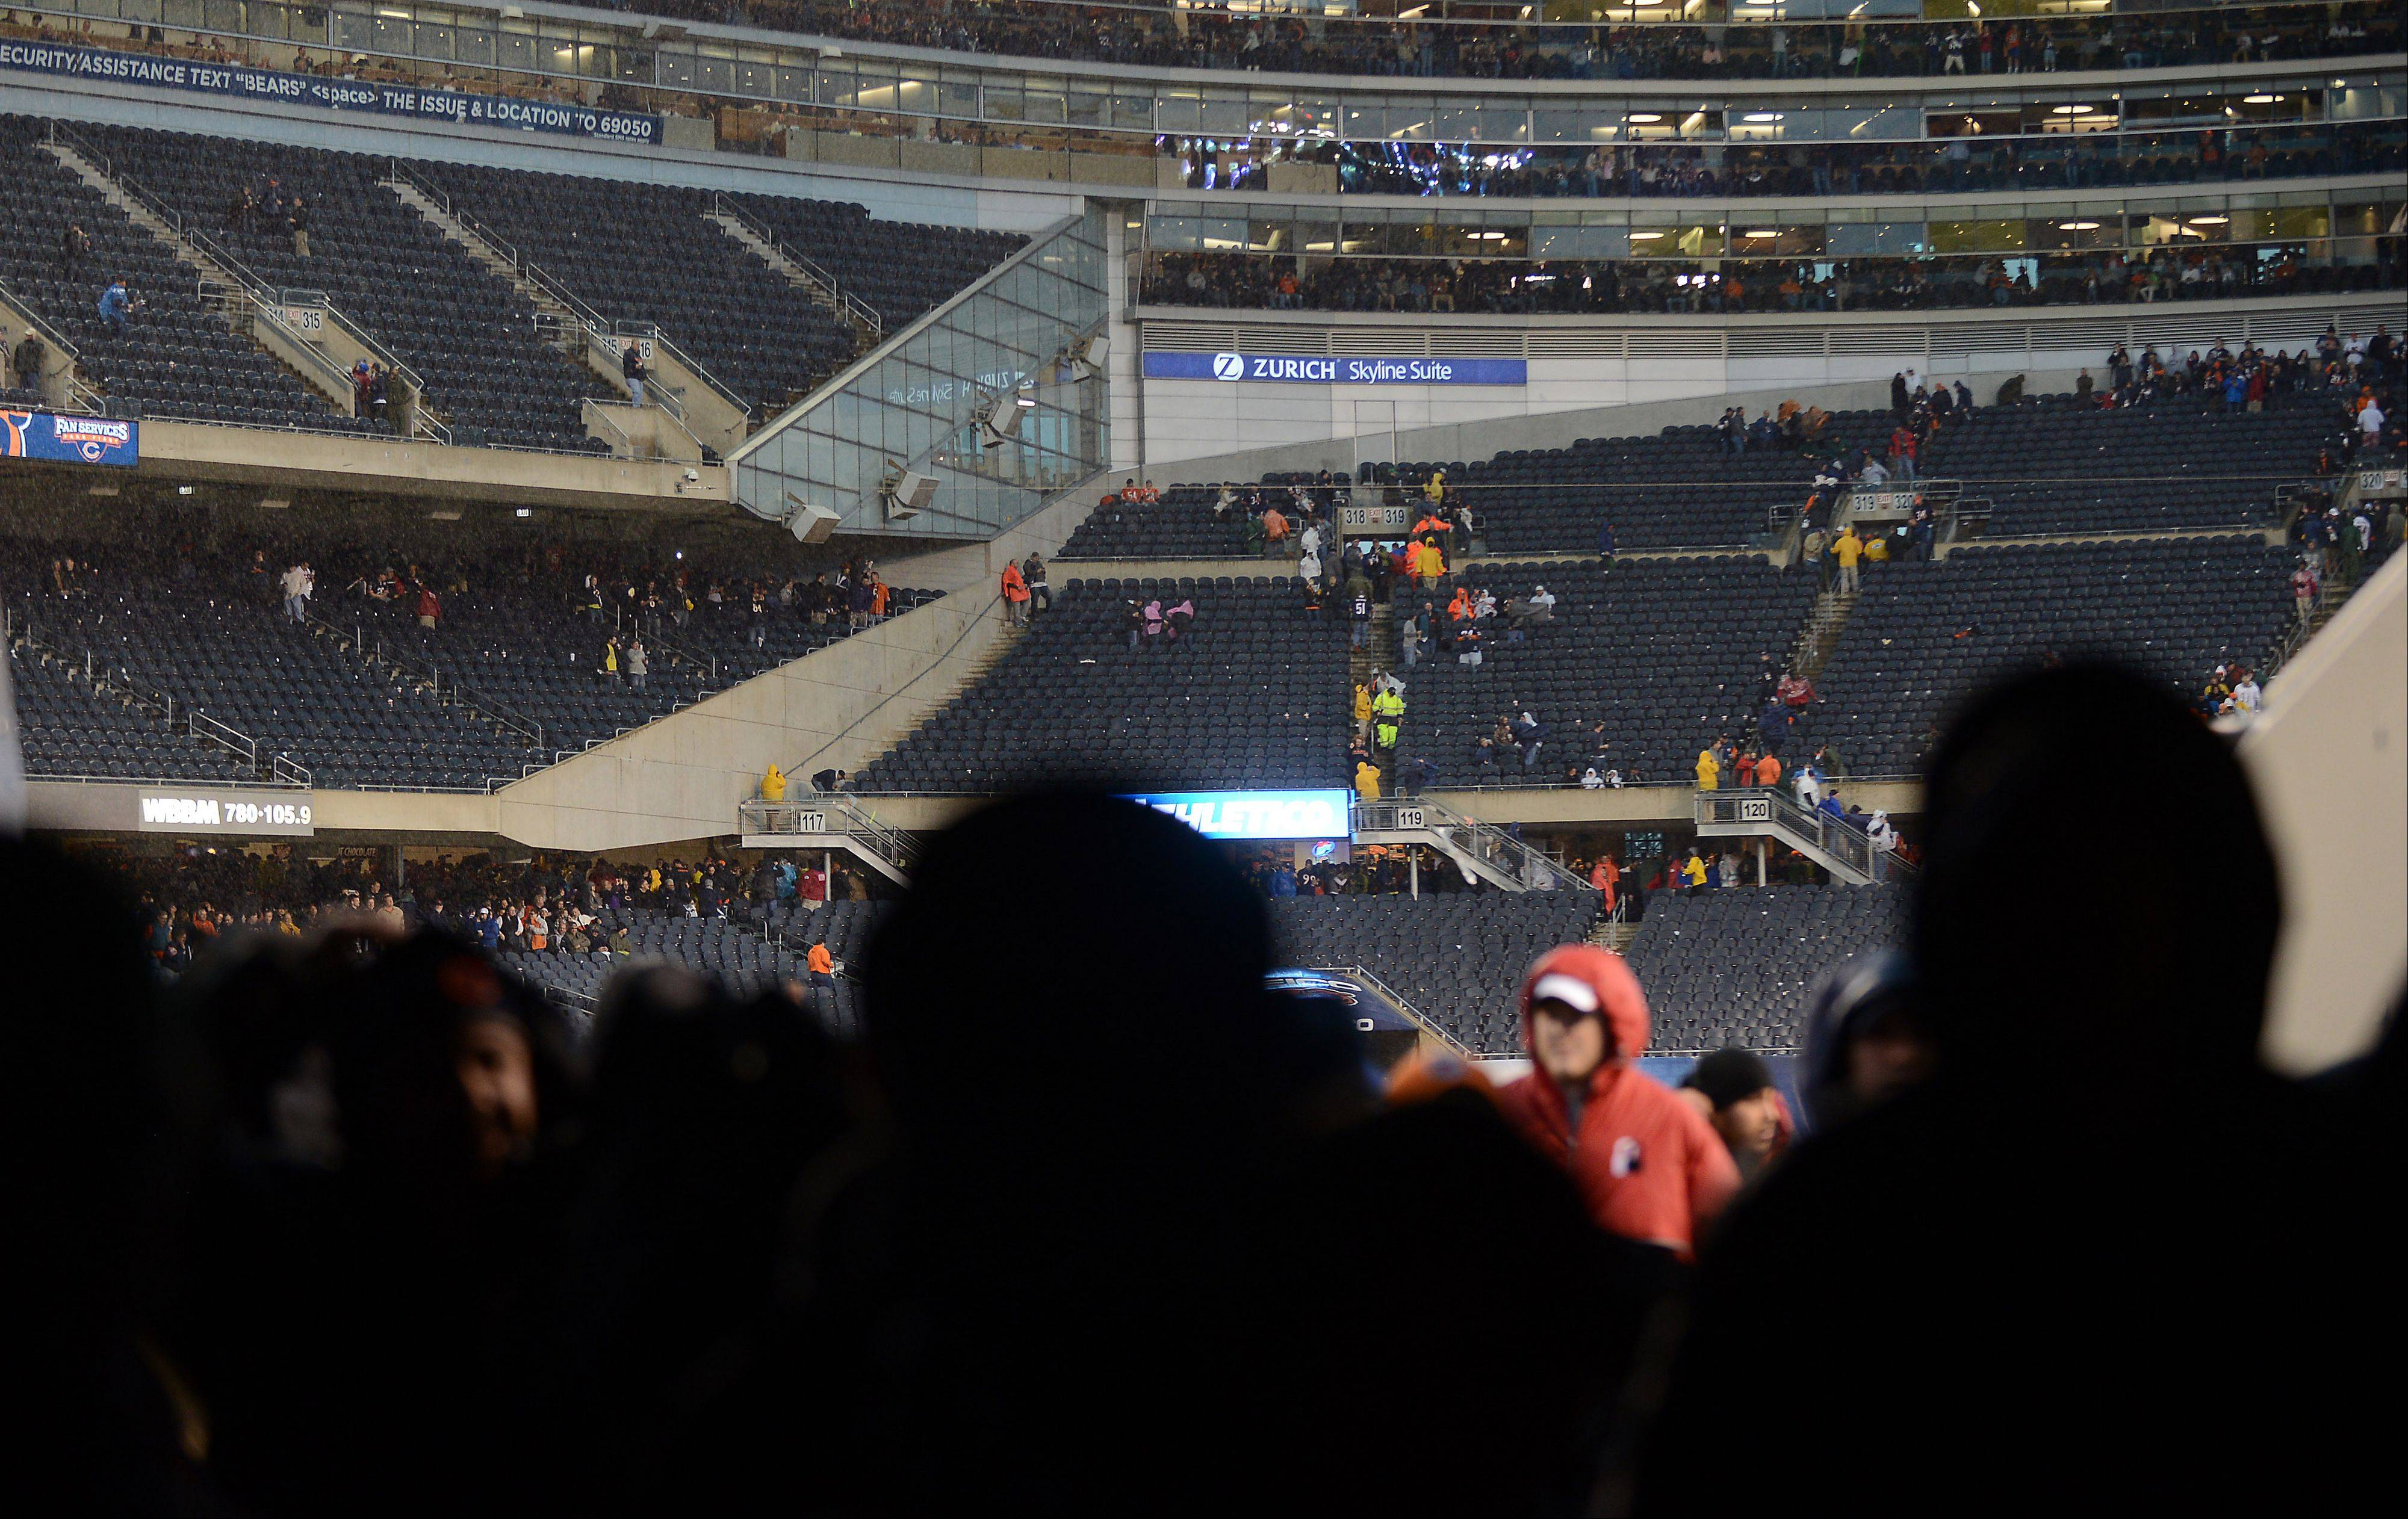 The stands empty and field personnel head through the tunnel as Sunday's Bears game is delayed in Chicago.